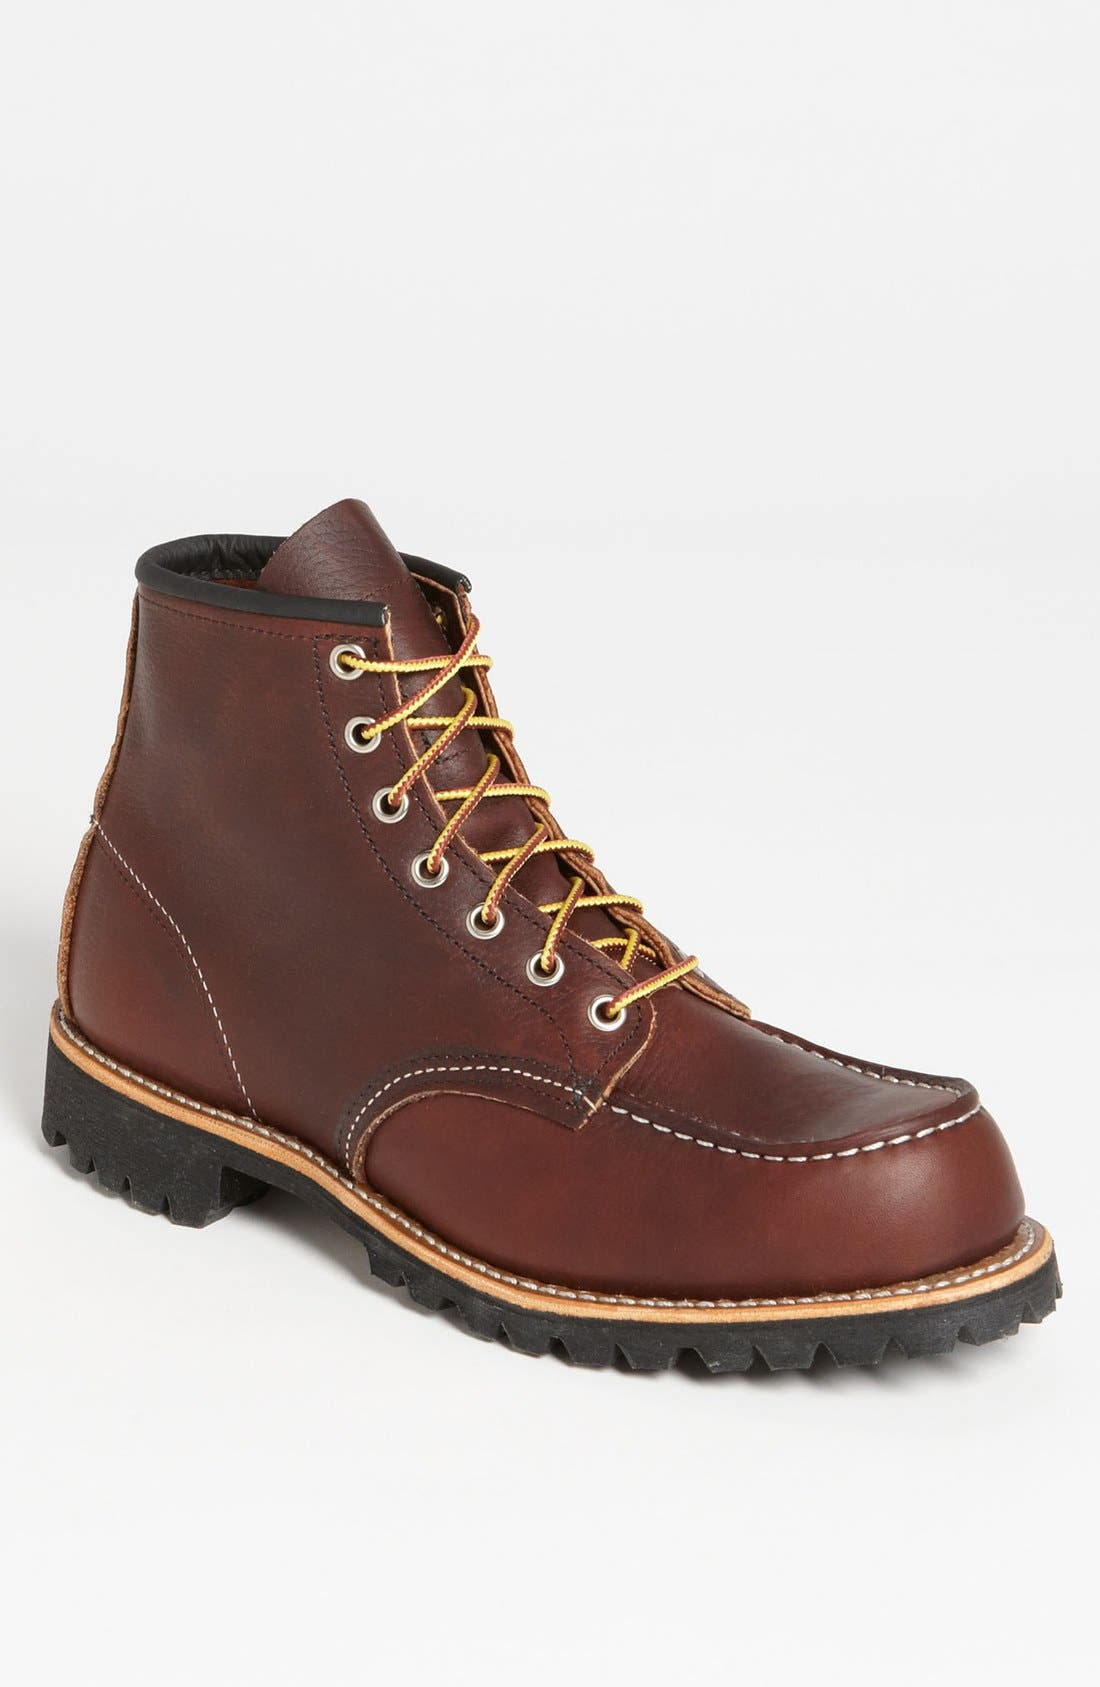 Red Wing Moc Toe Boot, Size - (Online Only)